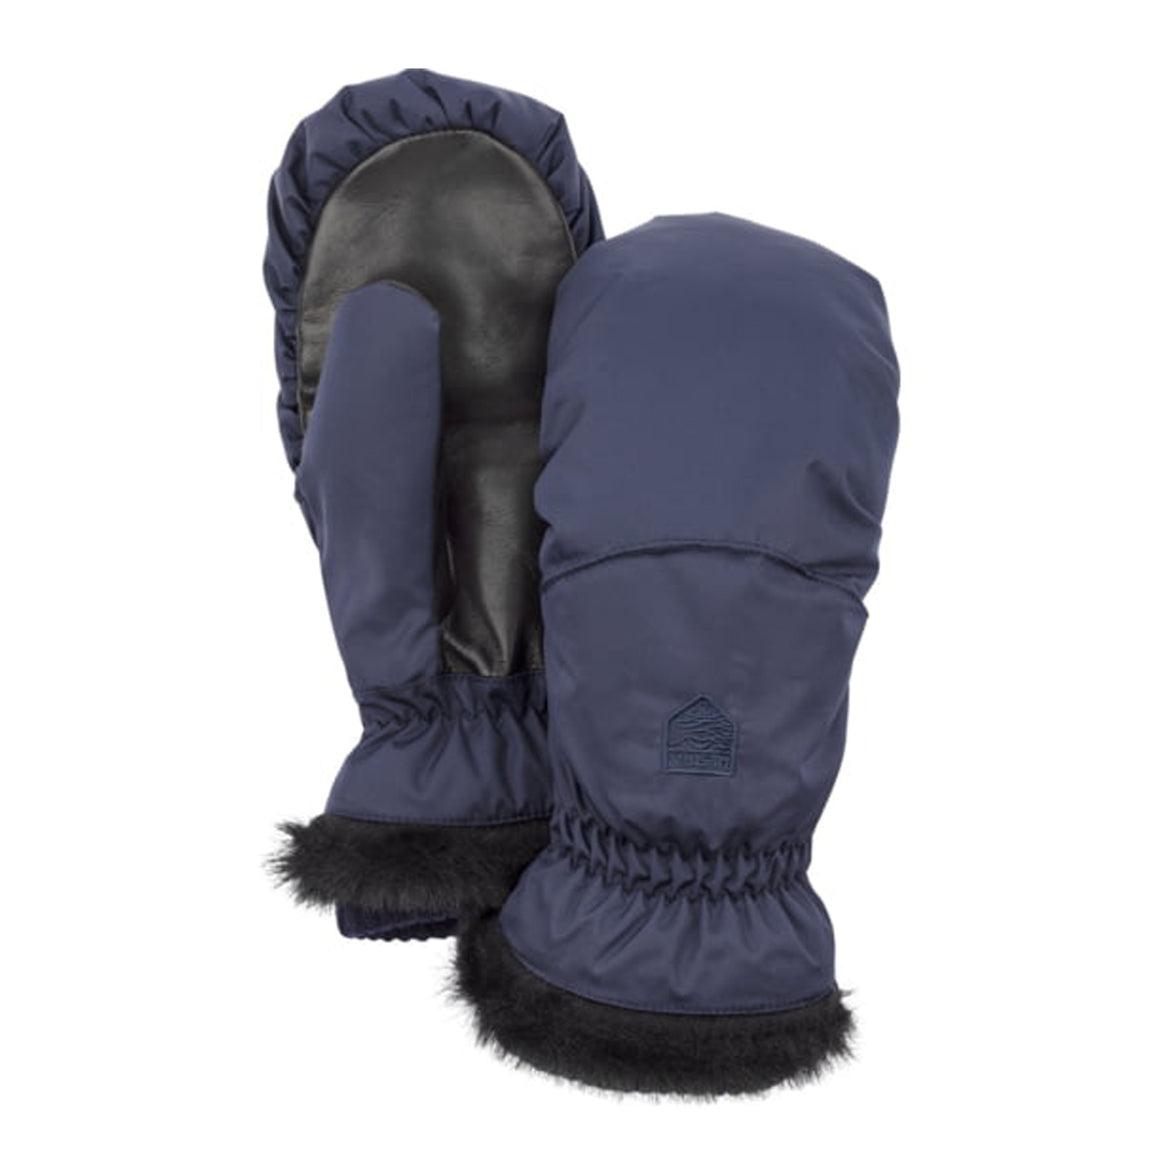 Primaloft Winter Forest Ski Mitts for Women in Navy